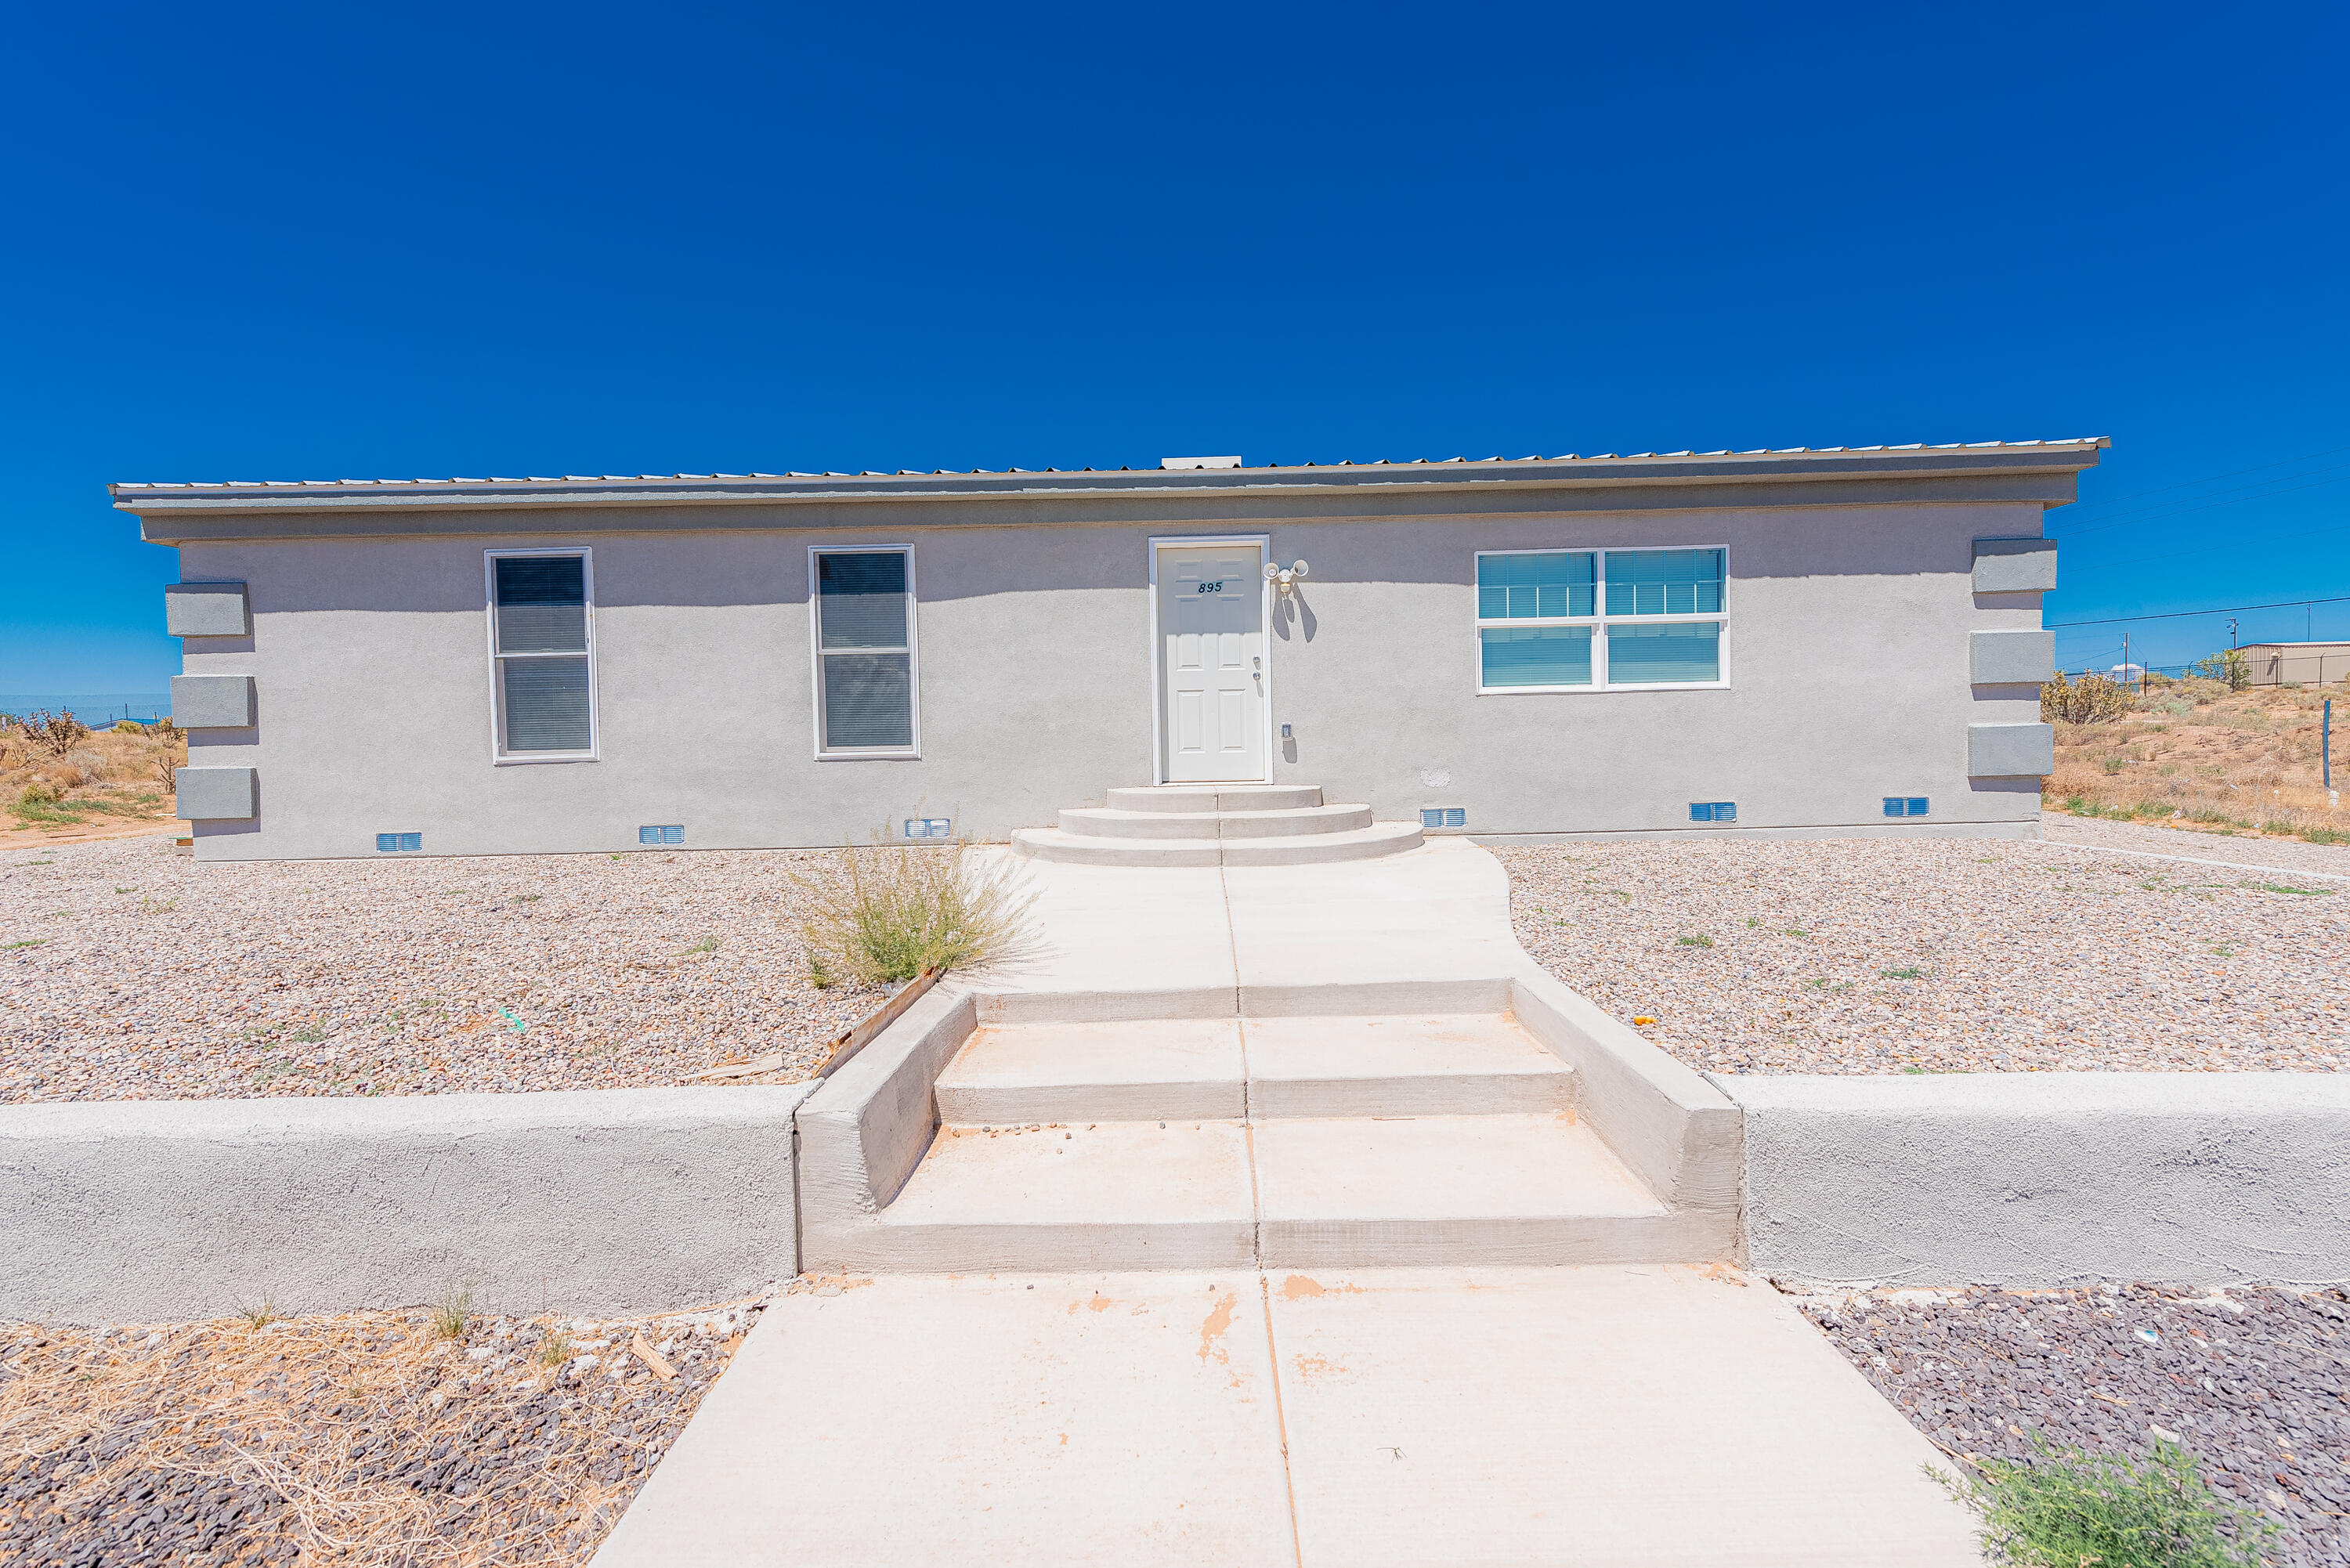 Beautifully renovated manufactured home on .50 acres lot! Newer roof, new floors, updated kitchen, new tankless water heater, updated bathrooms, new electrical wiring and stucco! Appliances convey, don't miss out on this opportunity!